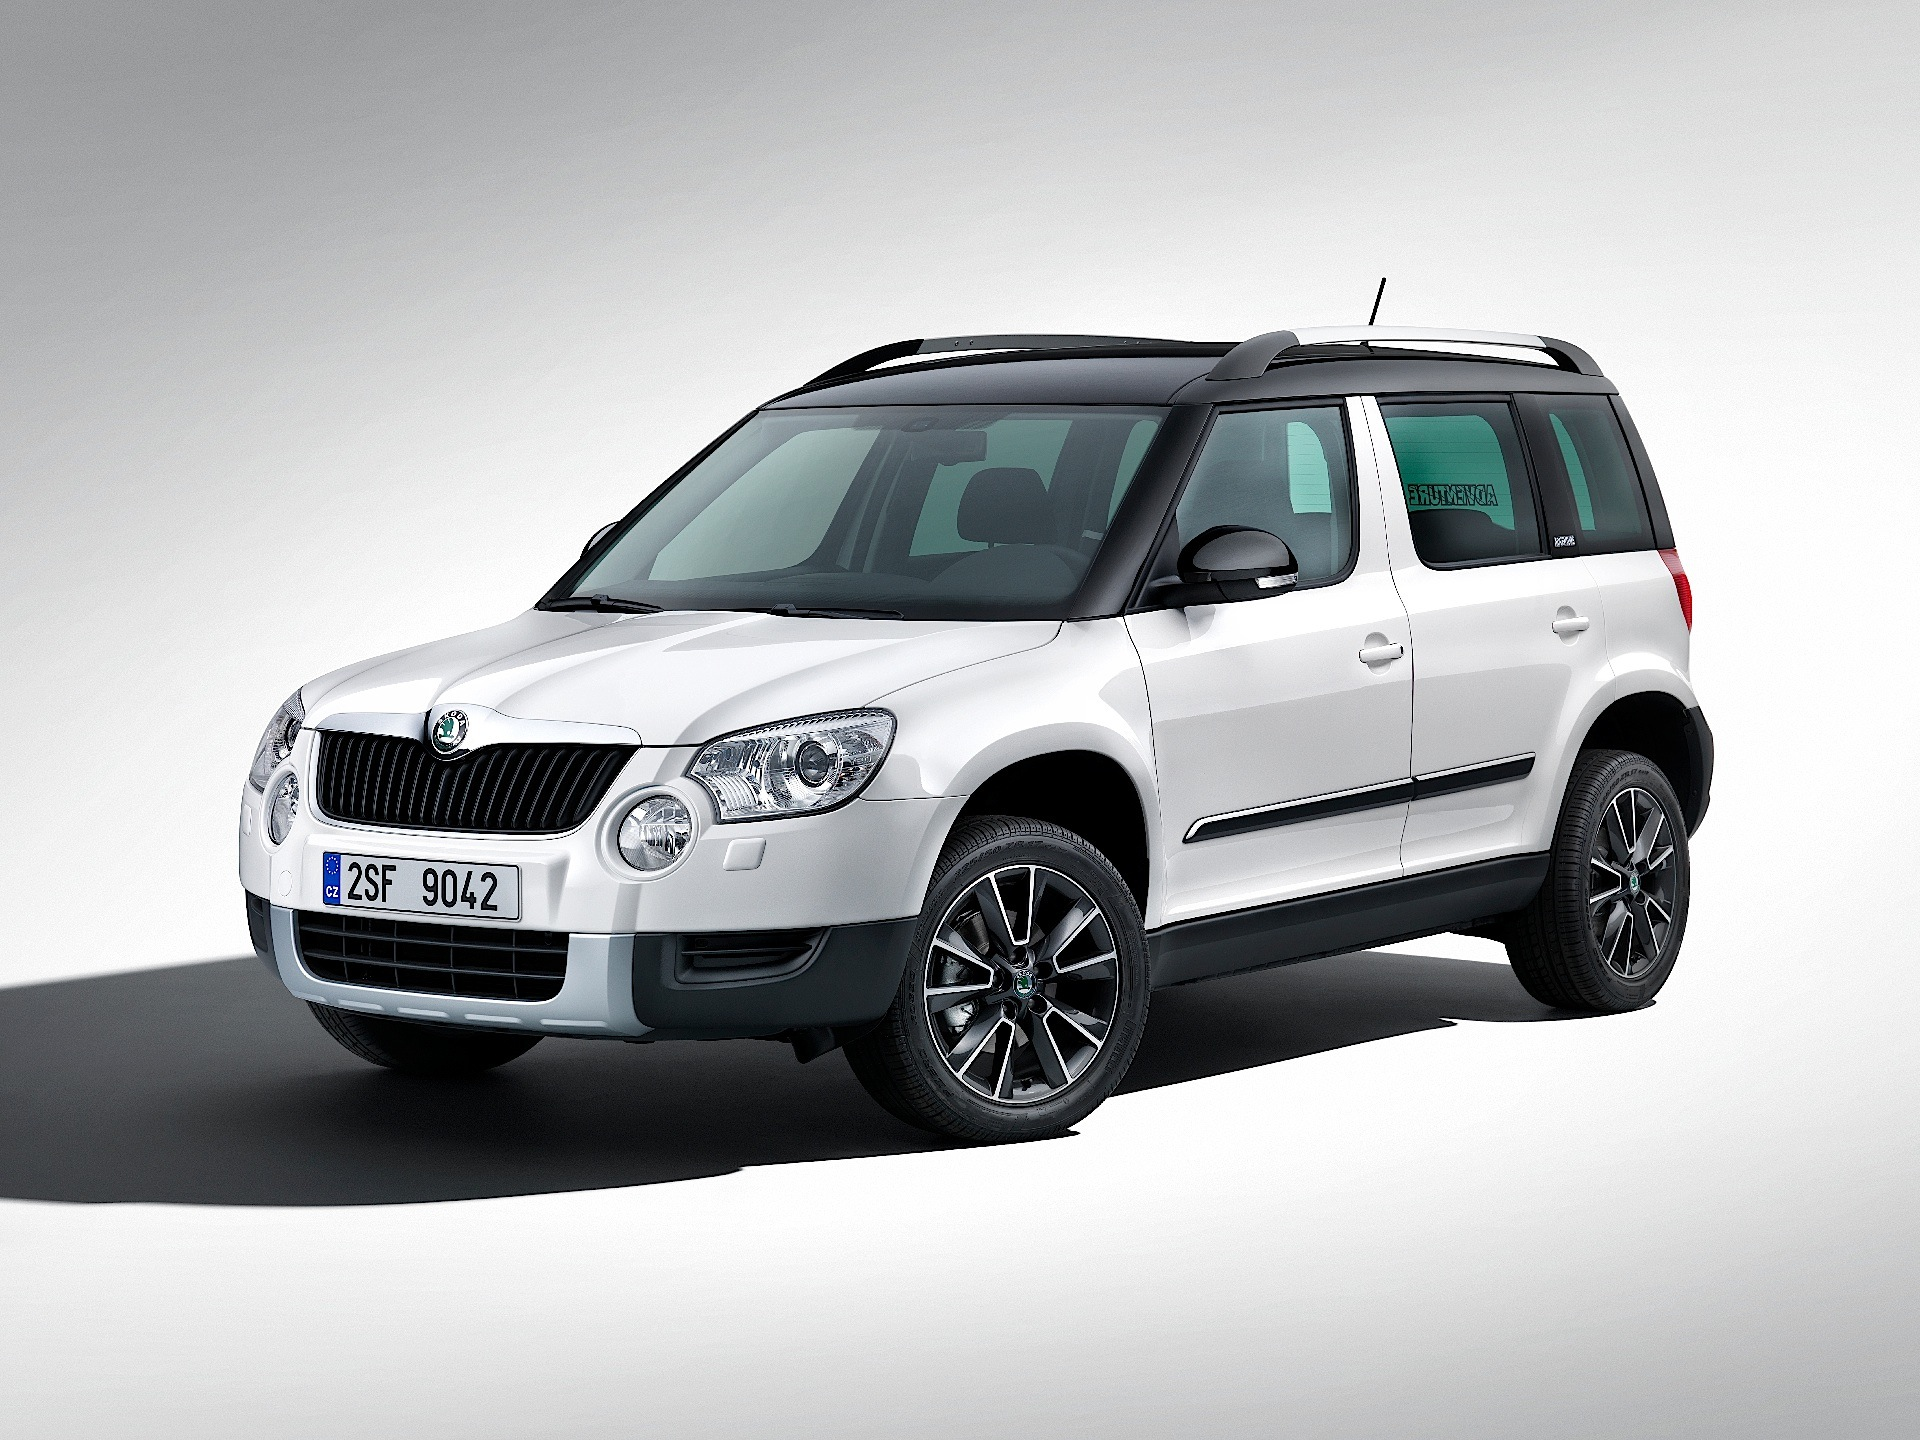 skoda yeti specs photos 2009 2010 2011 2012 2013 autoevolution. Black Bedroom Furniture Sets. Home Design Ideas